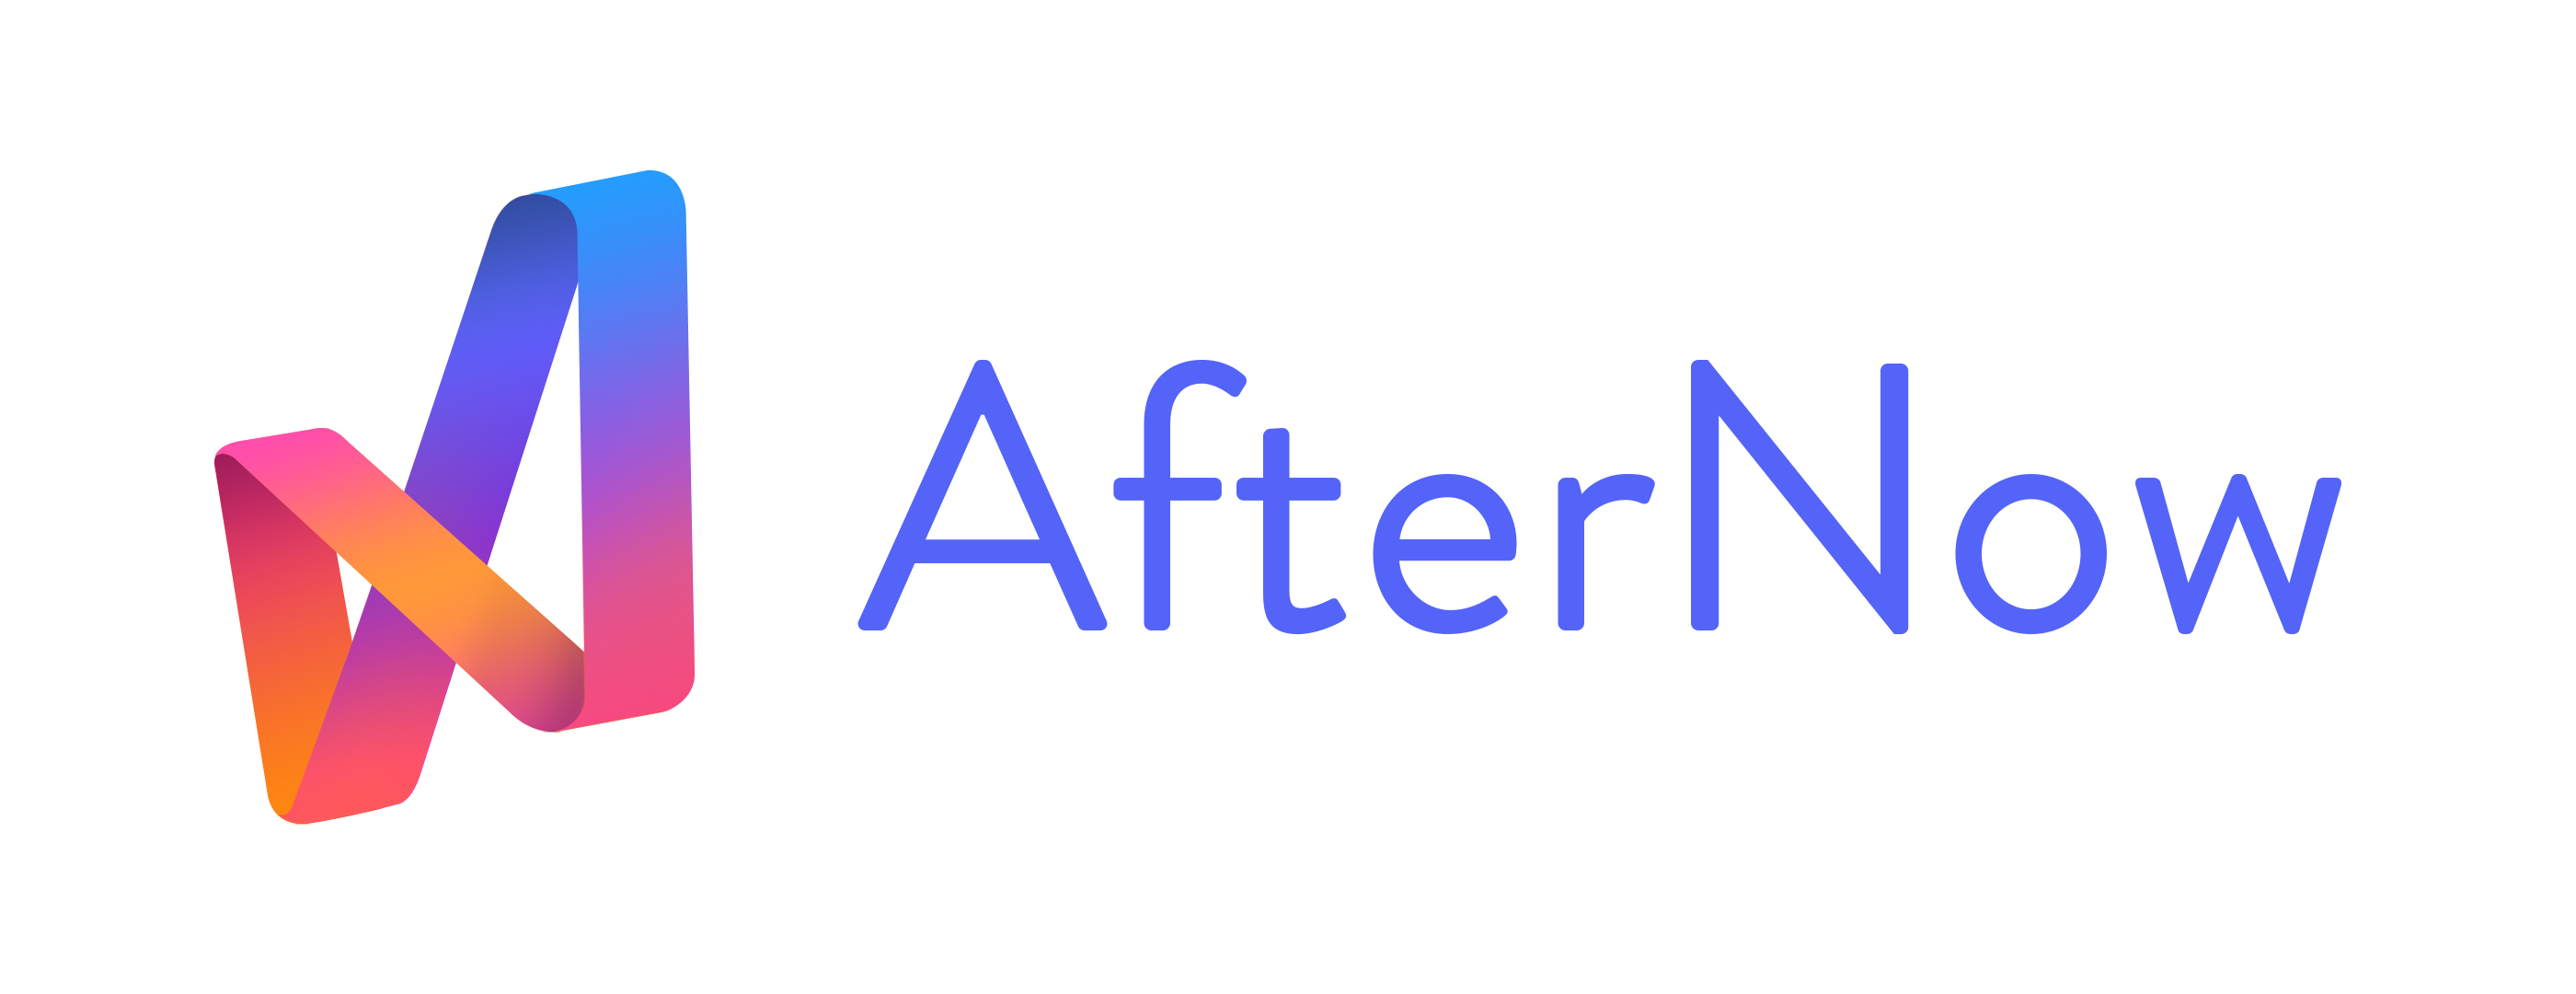 Welcome to AfterNow